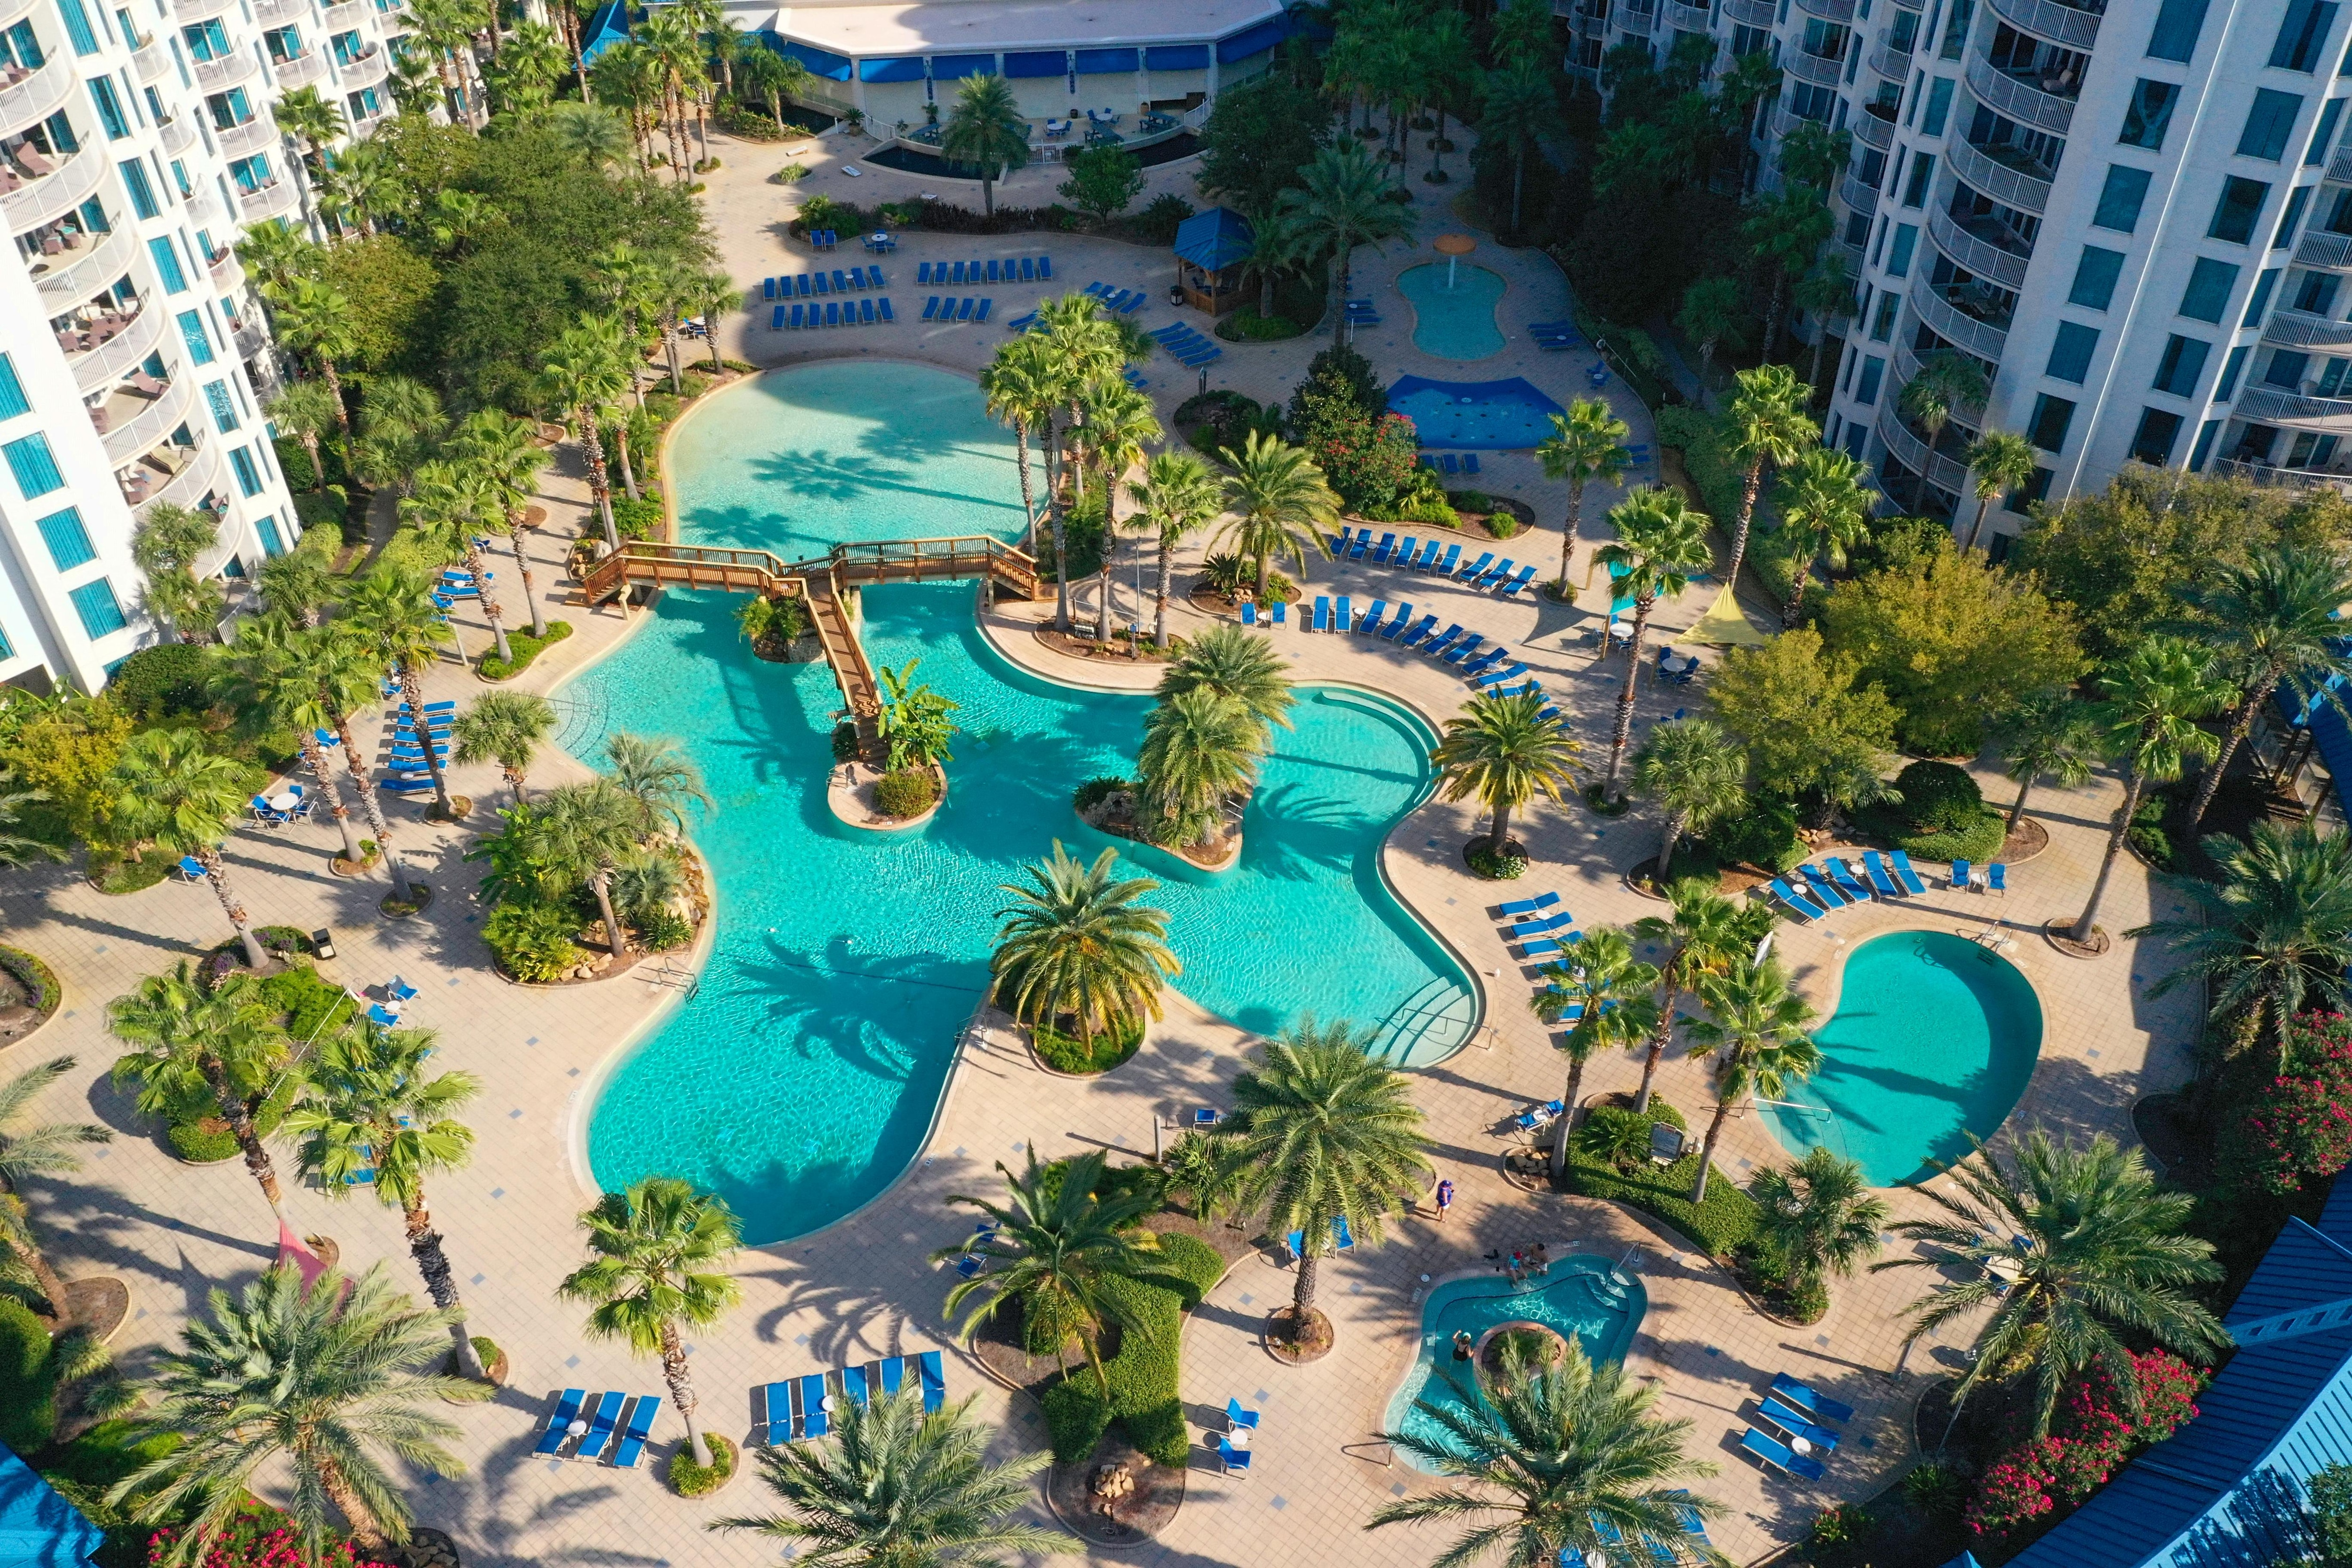 This ground-floor unit provides easy access to the resort's 2 pools, splash pad, and hot tub.